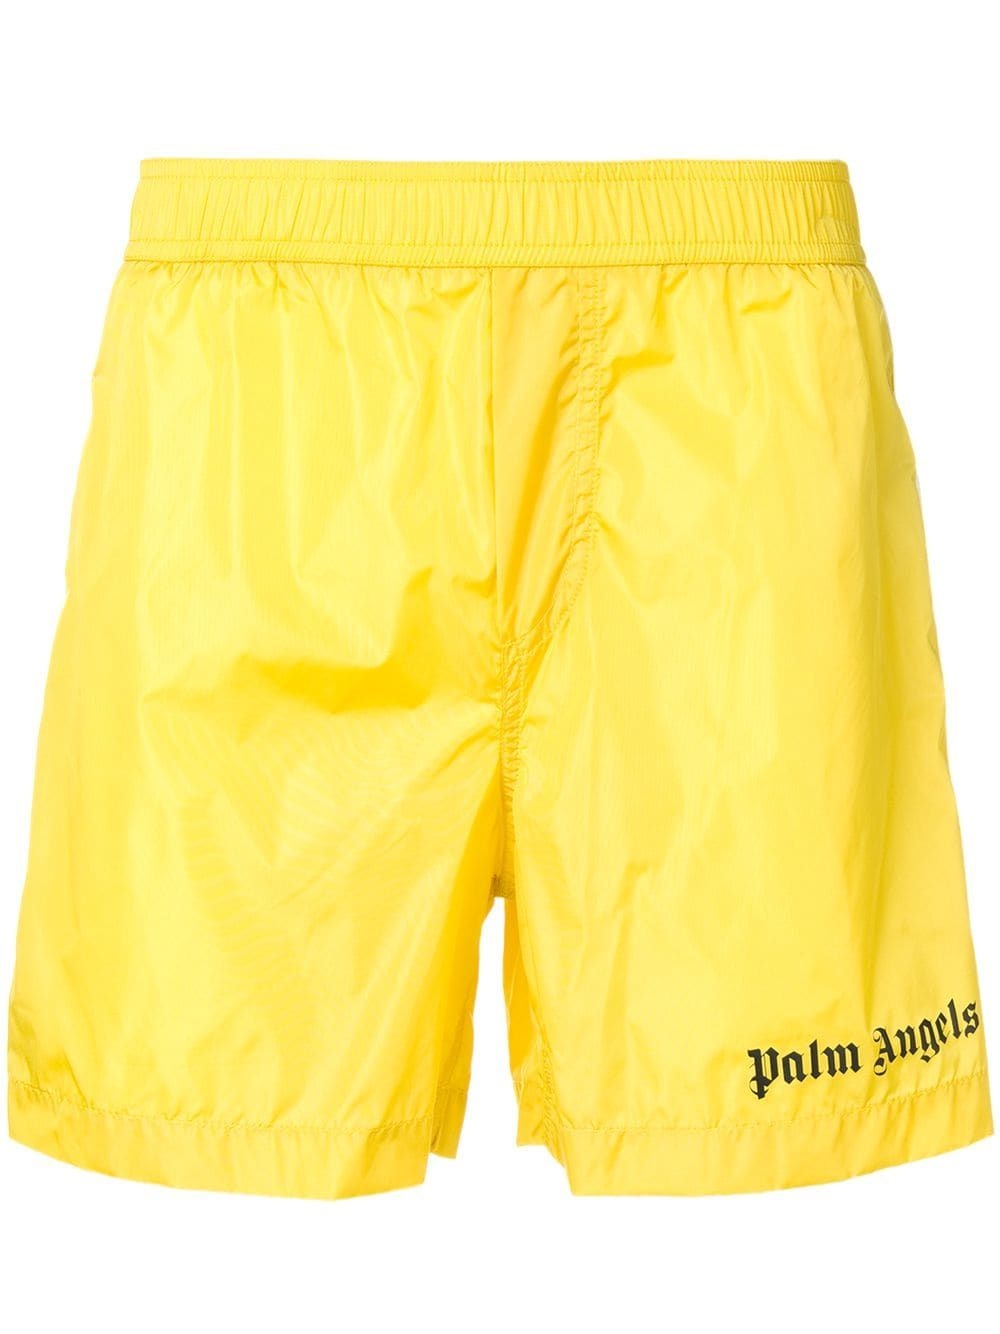 PALM ANGELS PALM ANGELS TRACK BOARD SHORTS YELLOW